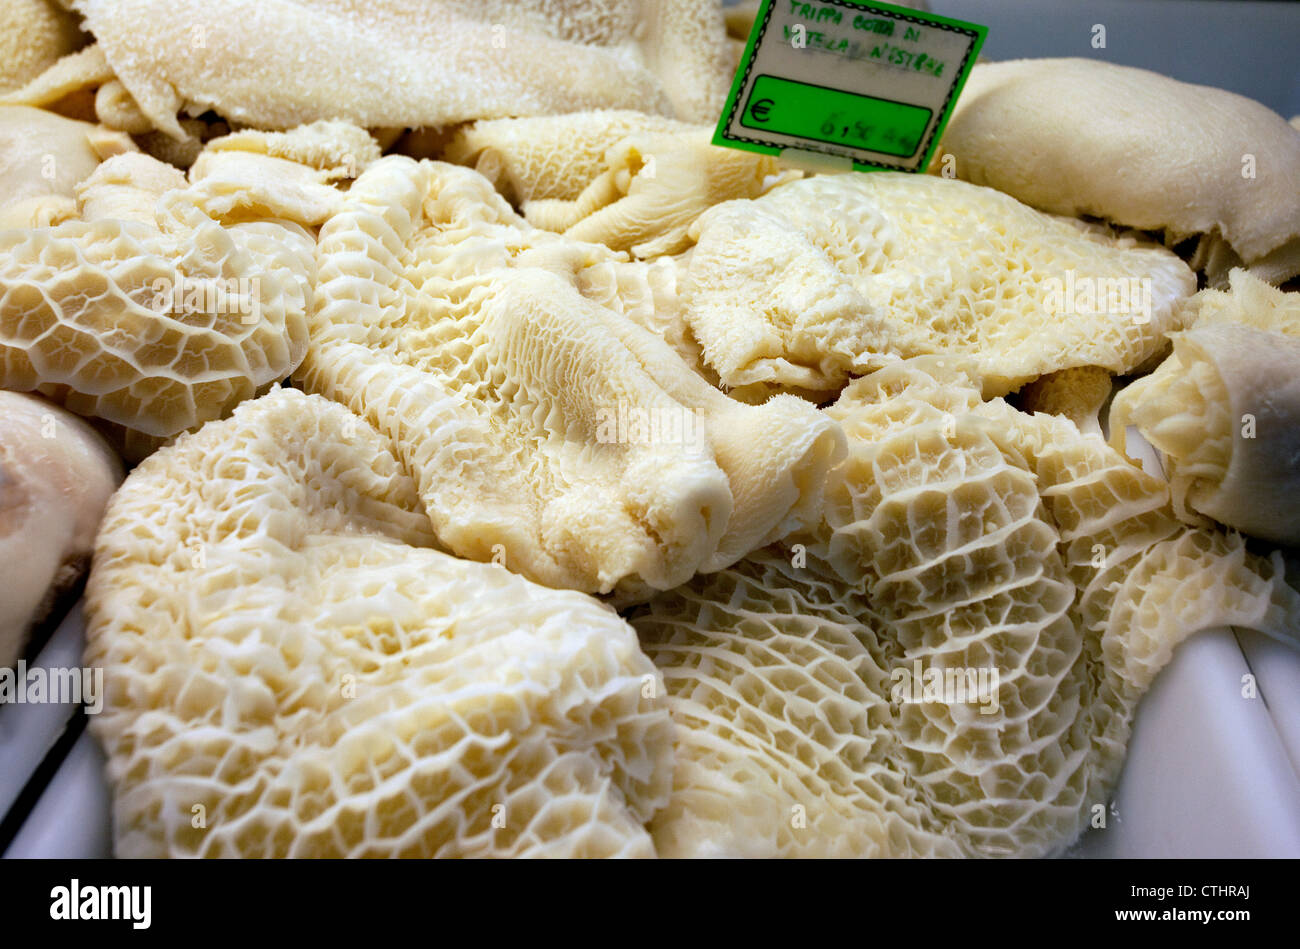 Trippa (cow tripe) on sale in Mercato Centrale, Florence, Italy - Stock Image